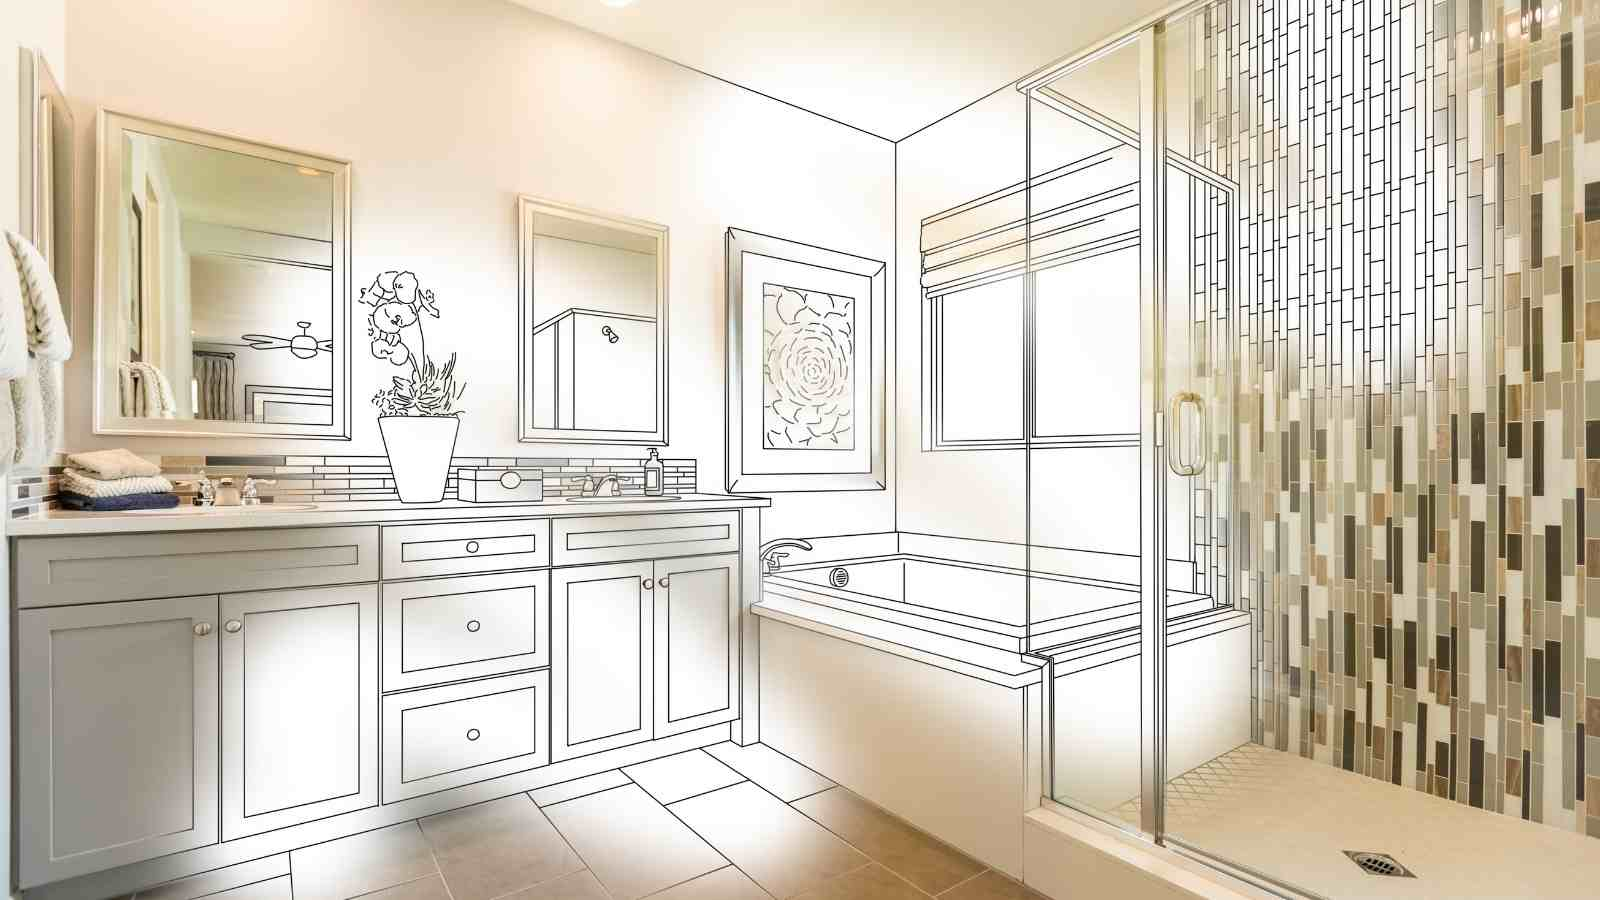 Ideas For Remodeling A Small Bathroom 35 Amazing Bathroom Remodel Diy Ideas That Give A Stunning